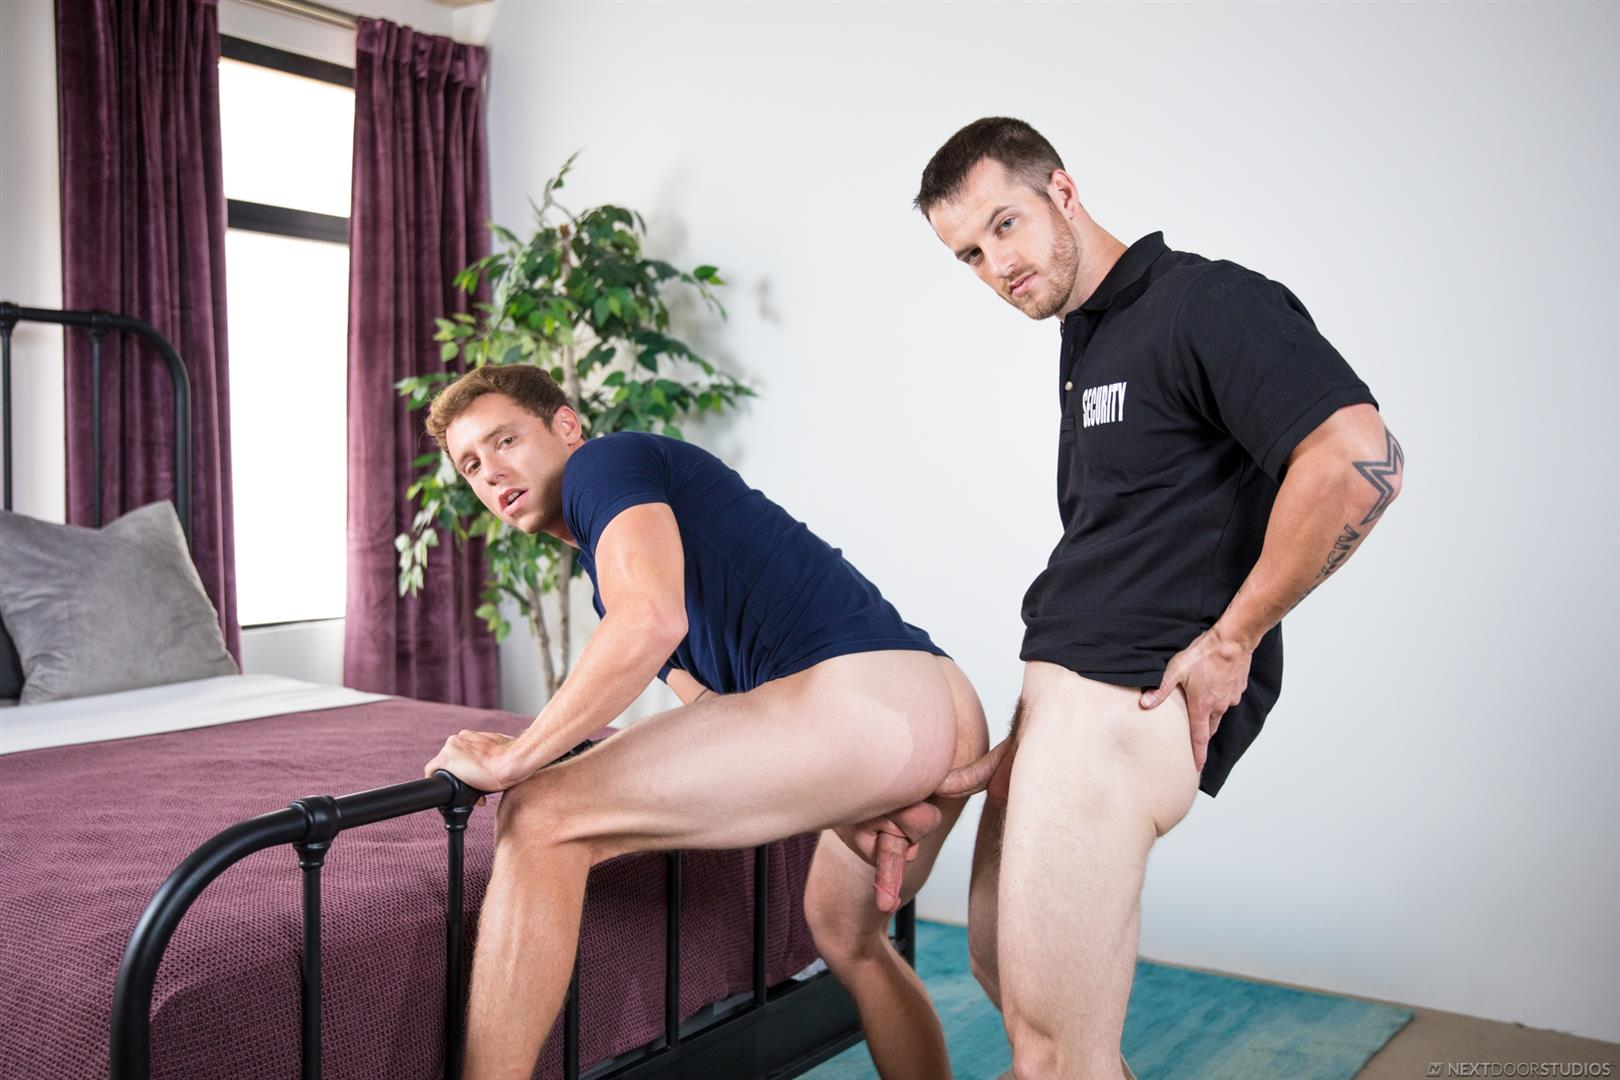 Next-Door-Buddies-Quentin-Gainz-and-Justin-Matthews-Bareback-Flip-Fucking-11 Quentin Gainz and Justin Matthews Bareback Flip Fucking